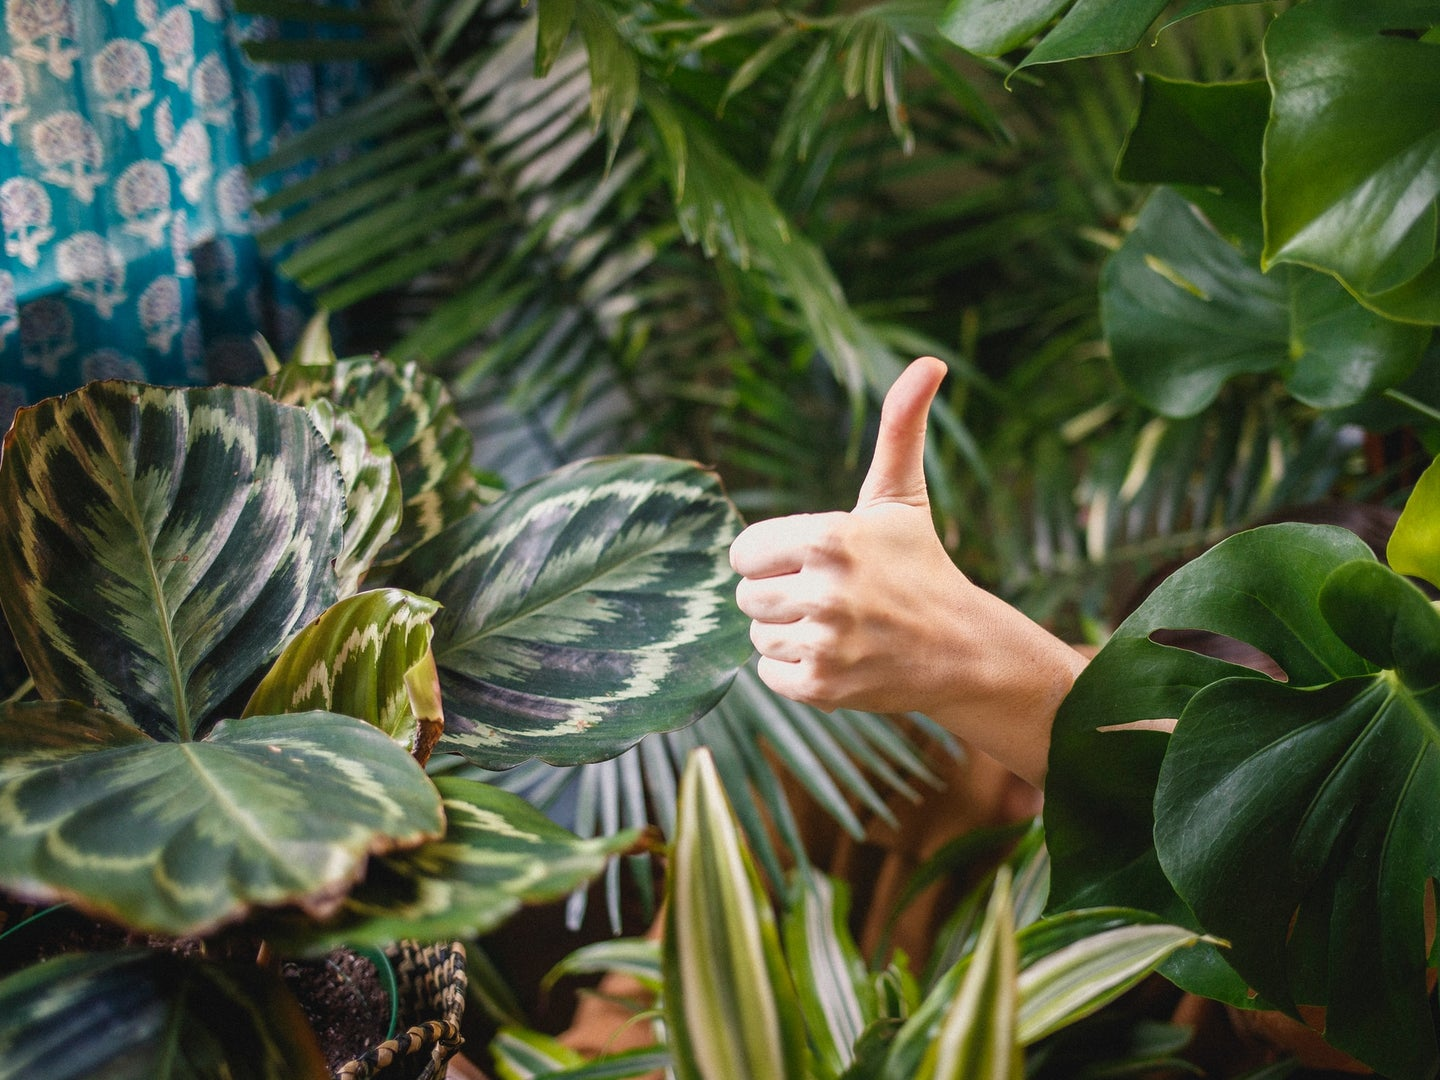 a person giving the thumbs-up in a room with drawn shades, surrounded by house plants